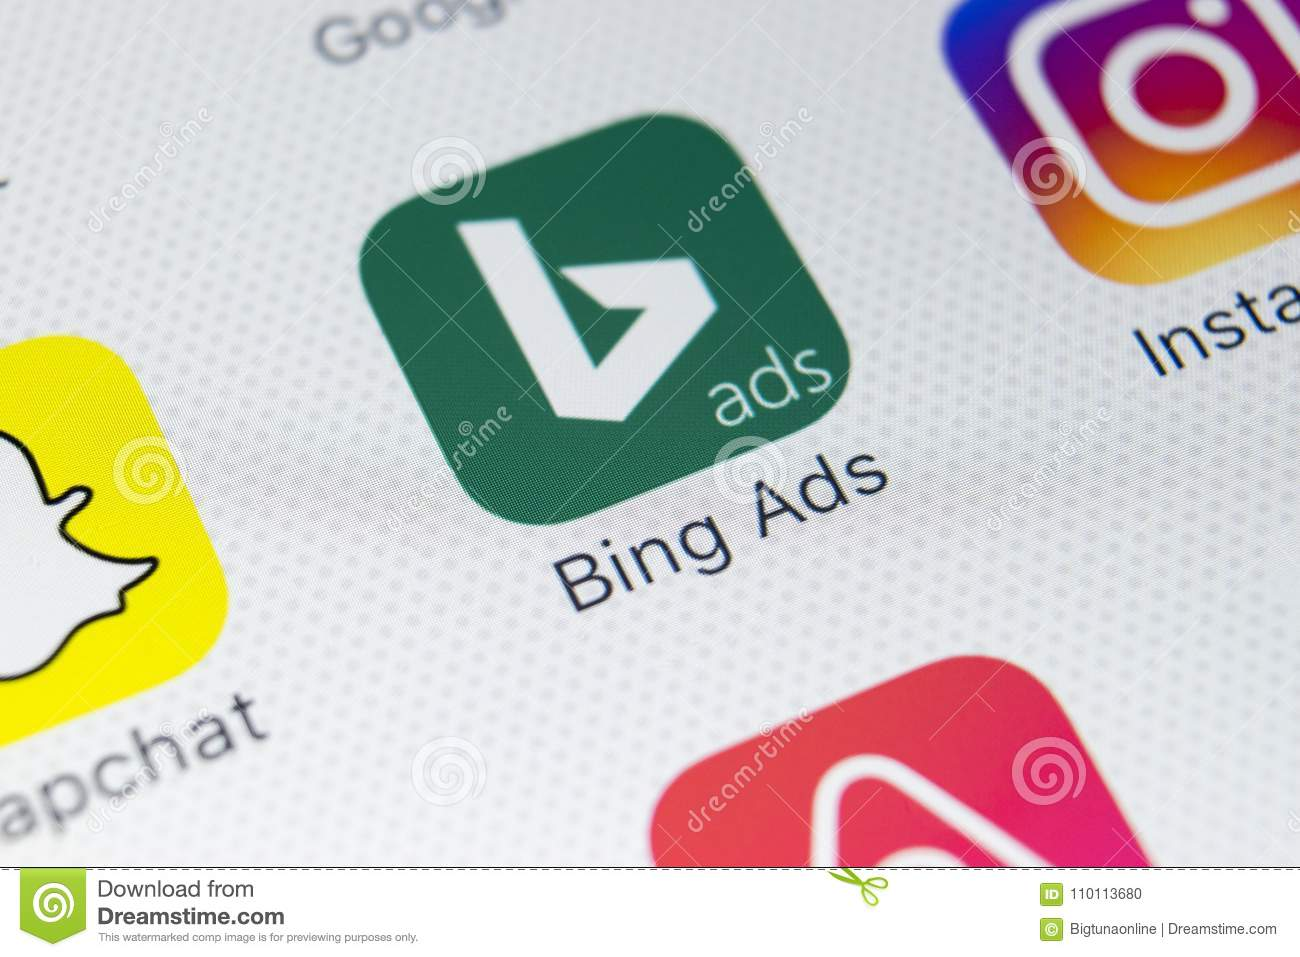 Bing application icon on Apple iPhone X screen close-up. Bing ads app icon. Bing ads is online advertising application. Social